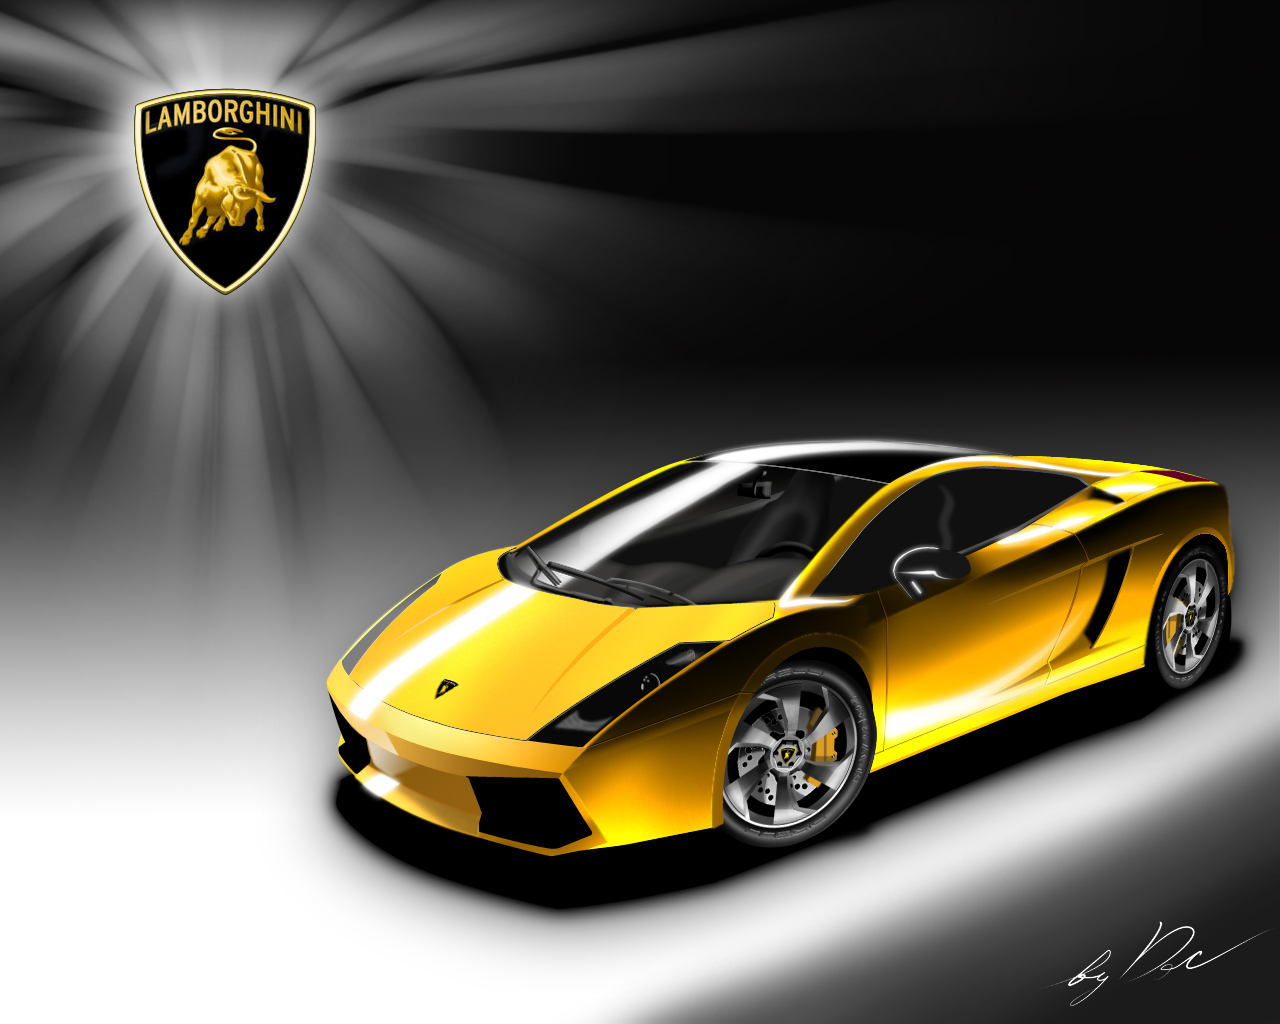 Wallpapers Of Lamborghini Car Wallpapersafari